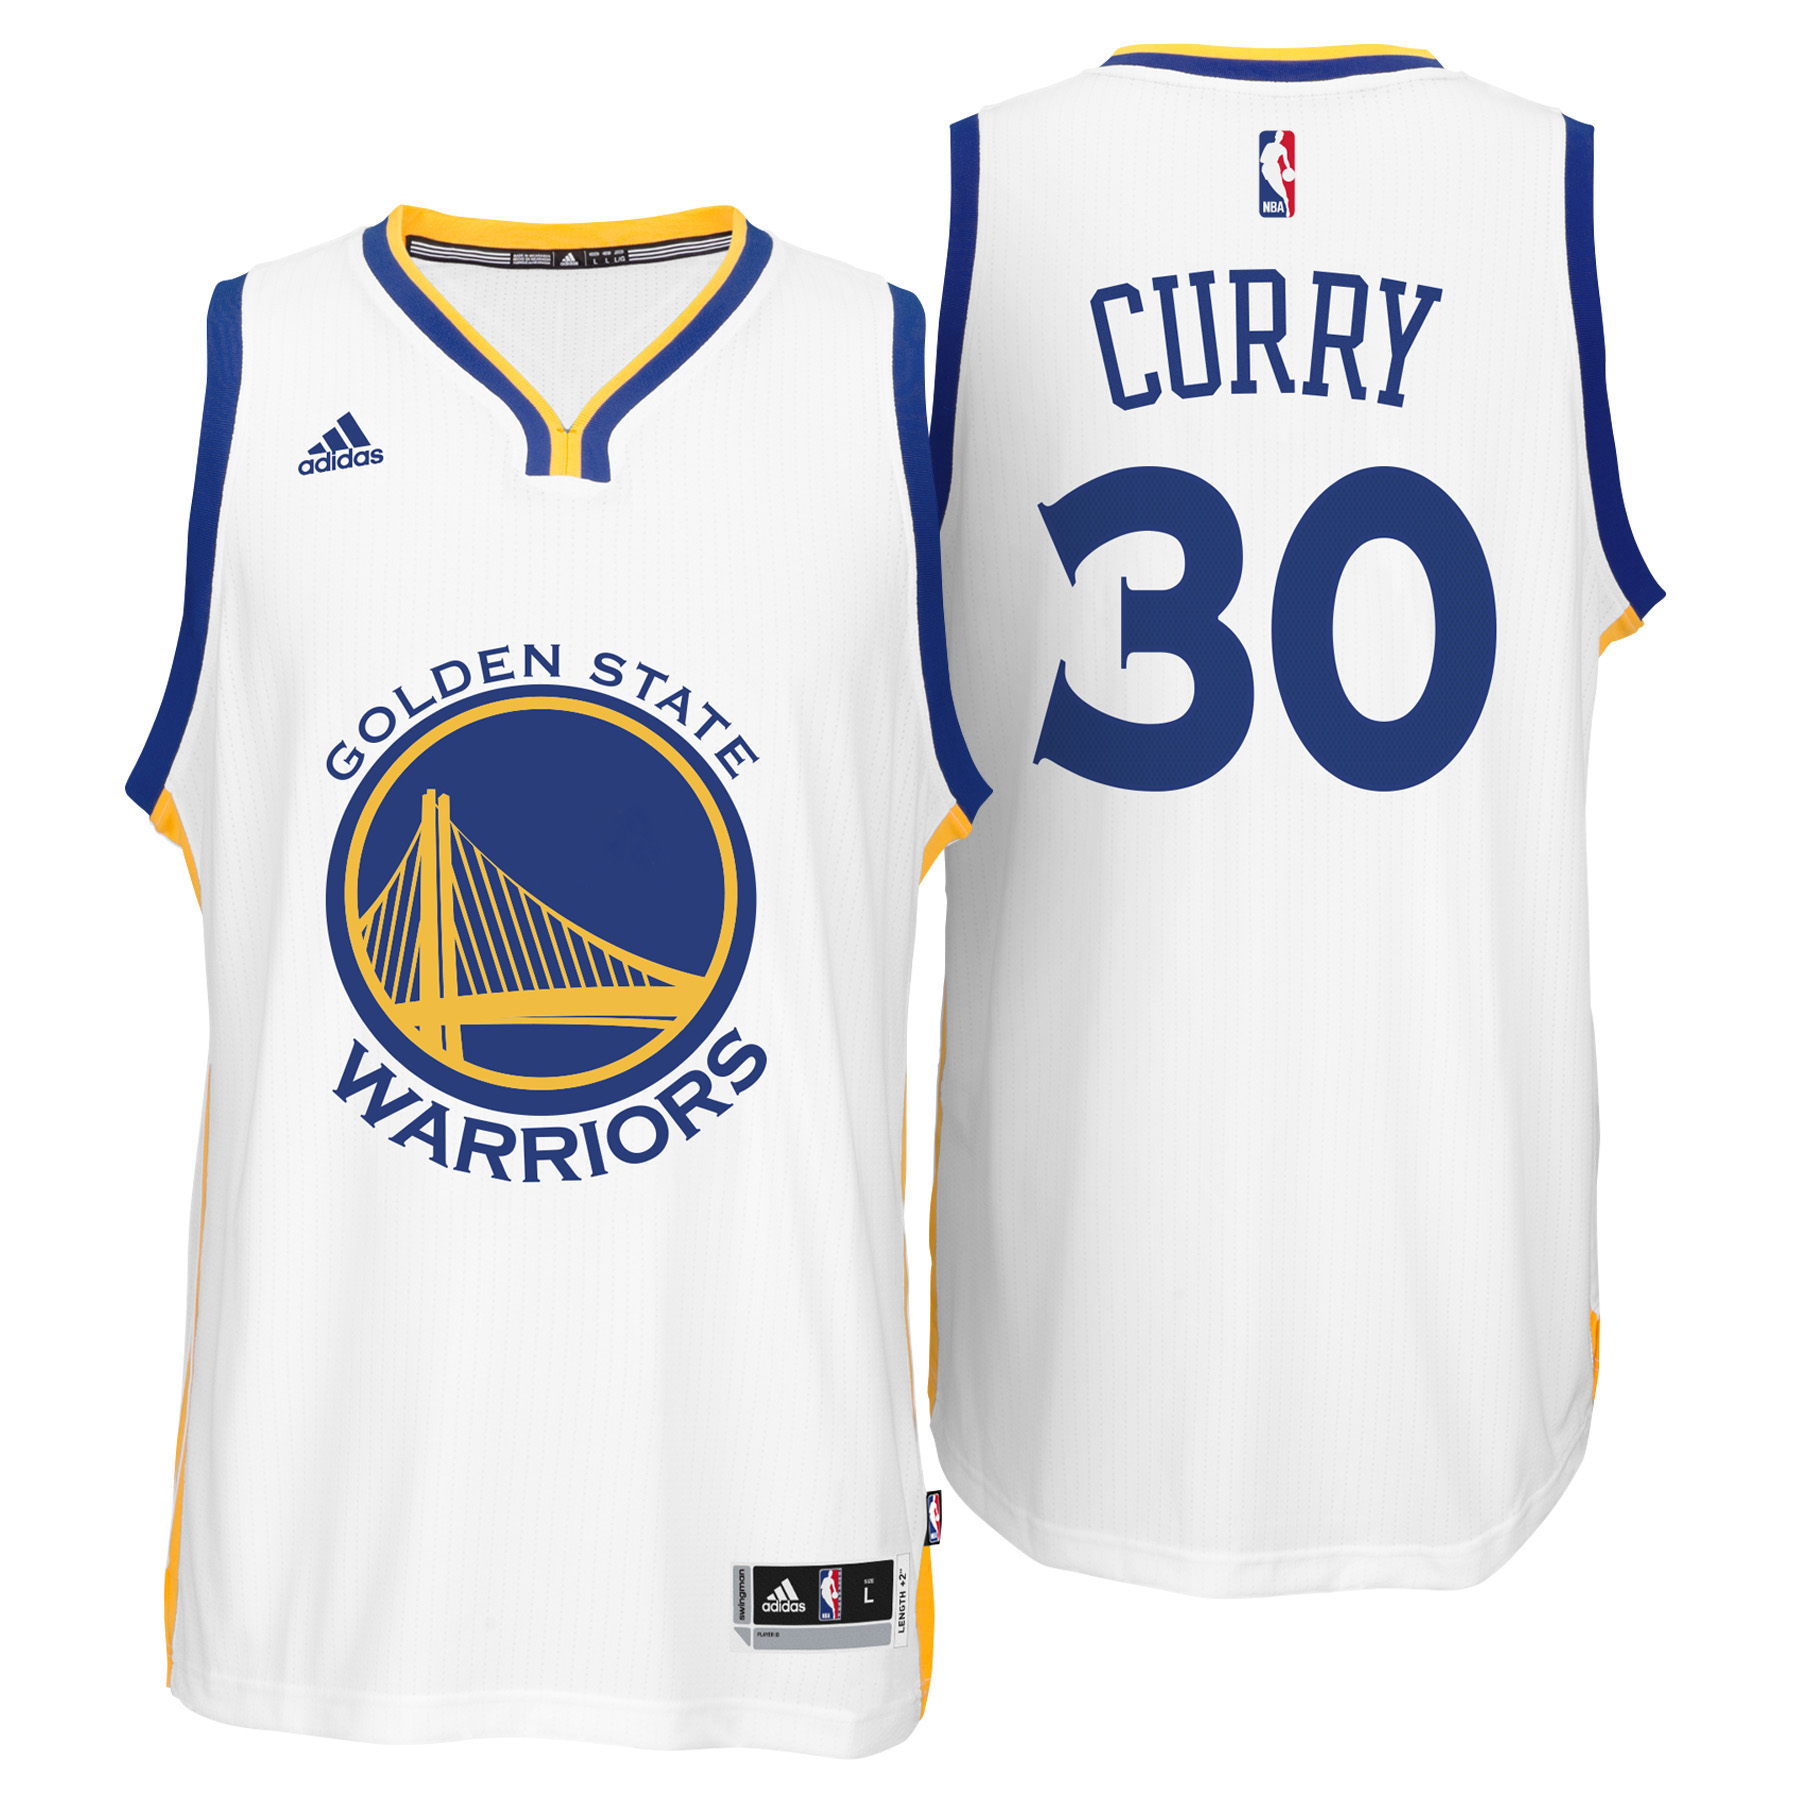 Golden State Warriors Home Swingman Jersey - Stephen Curry - Mens